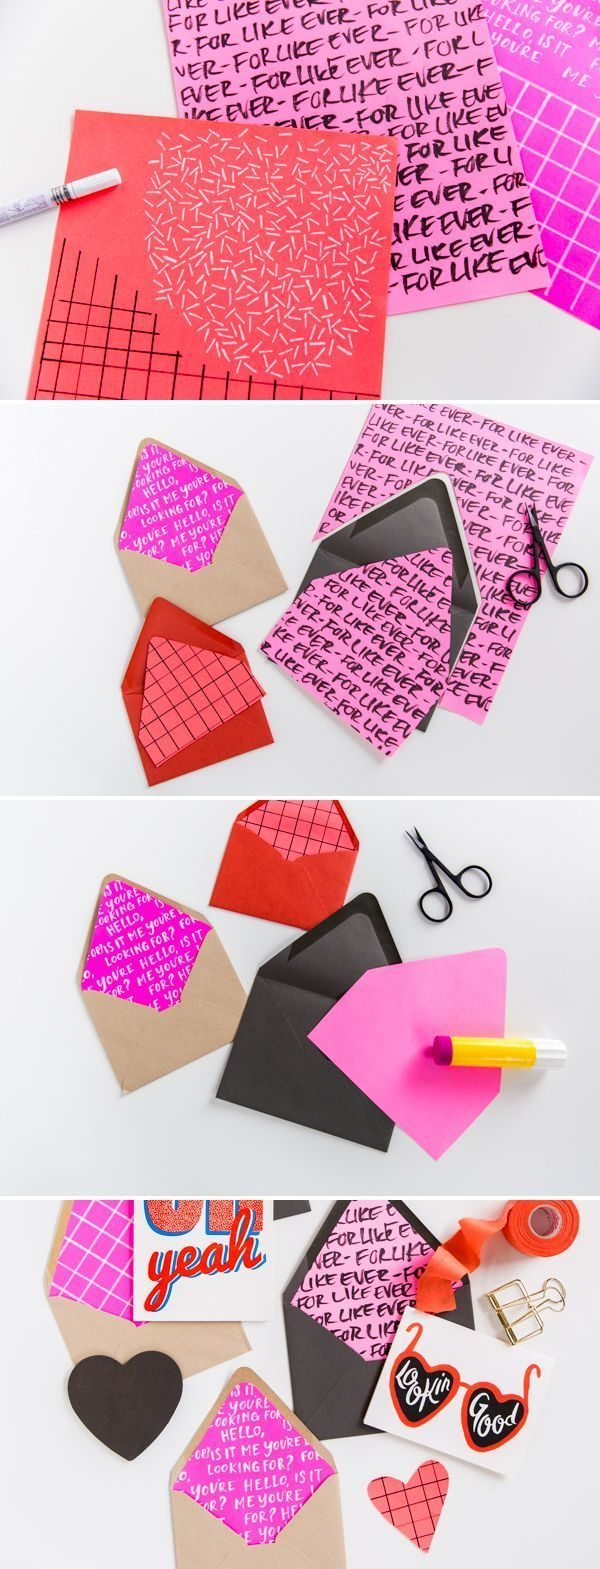 How to Make DIY Envelope Liners for Valentine's Day #paper #envelopes #valentinesday #valentine